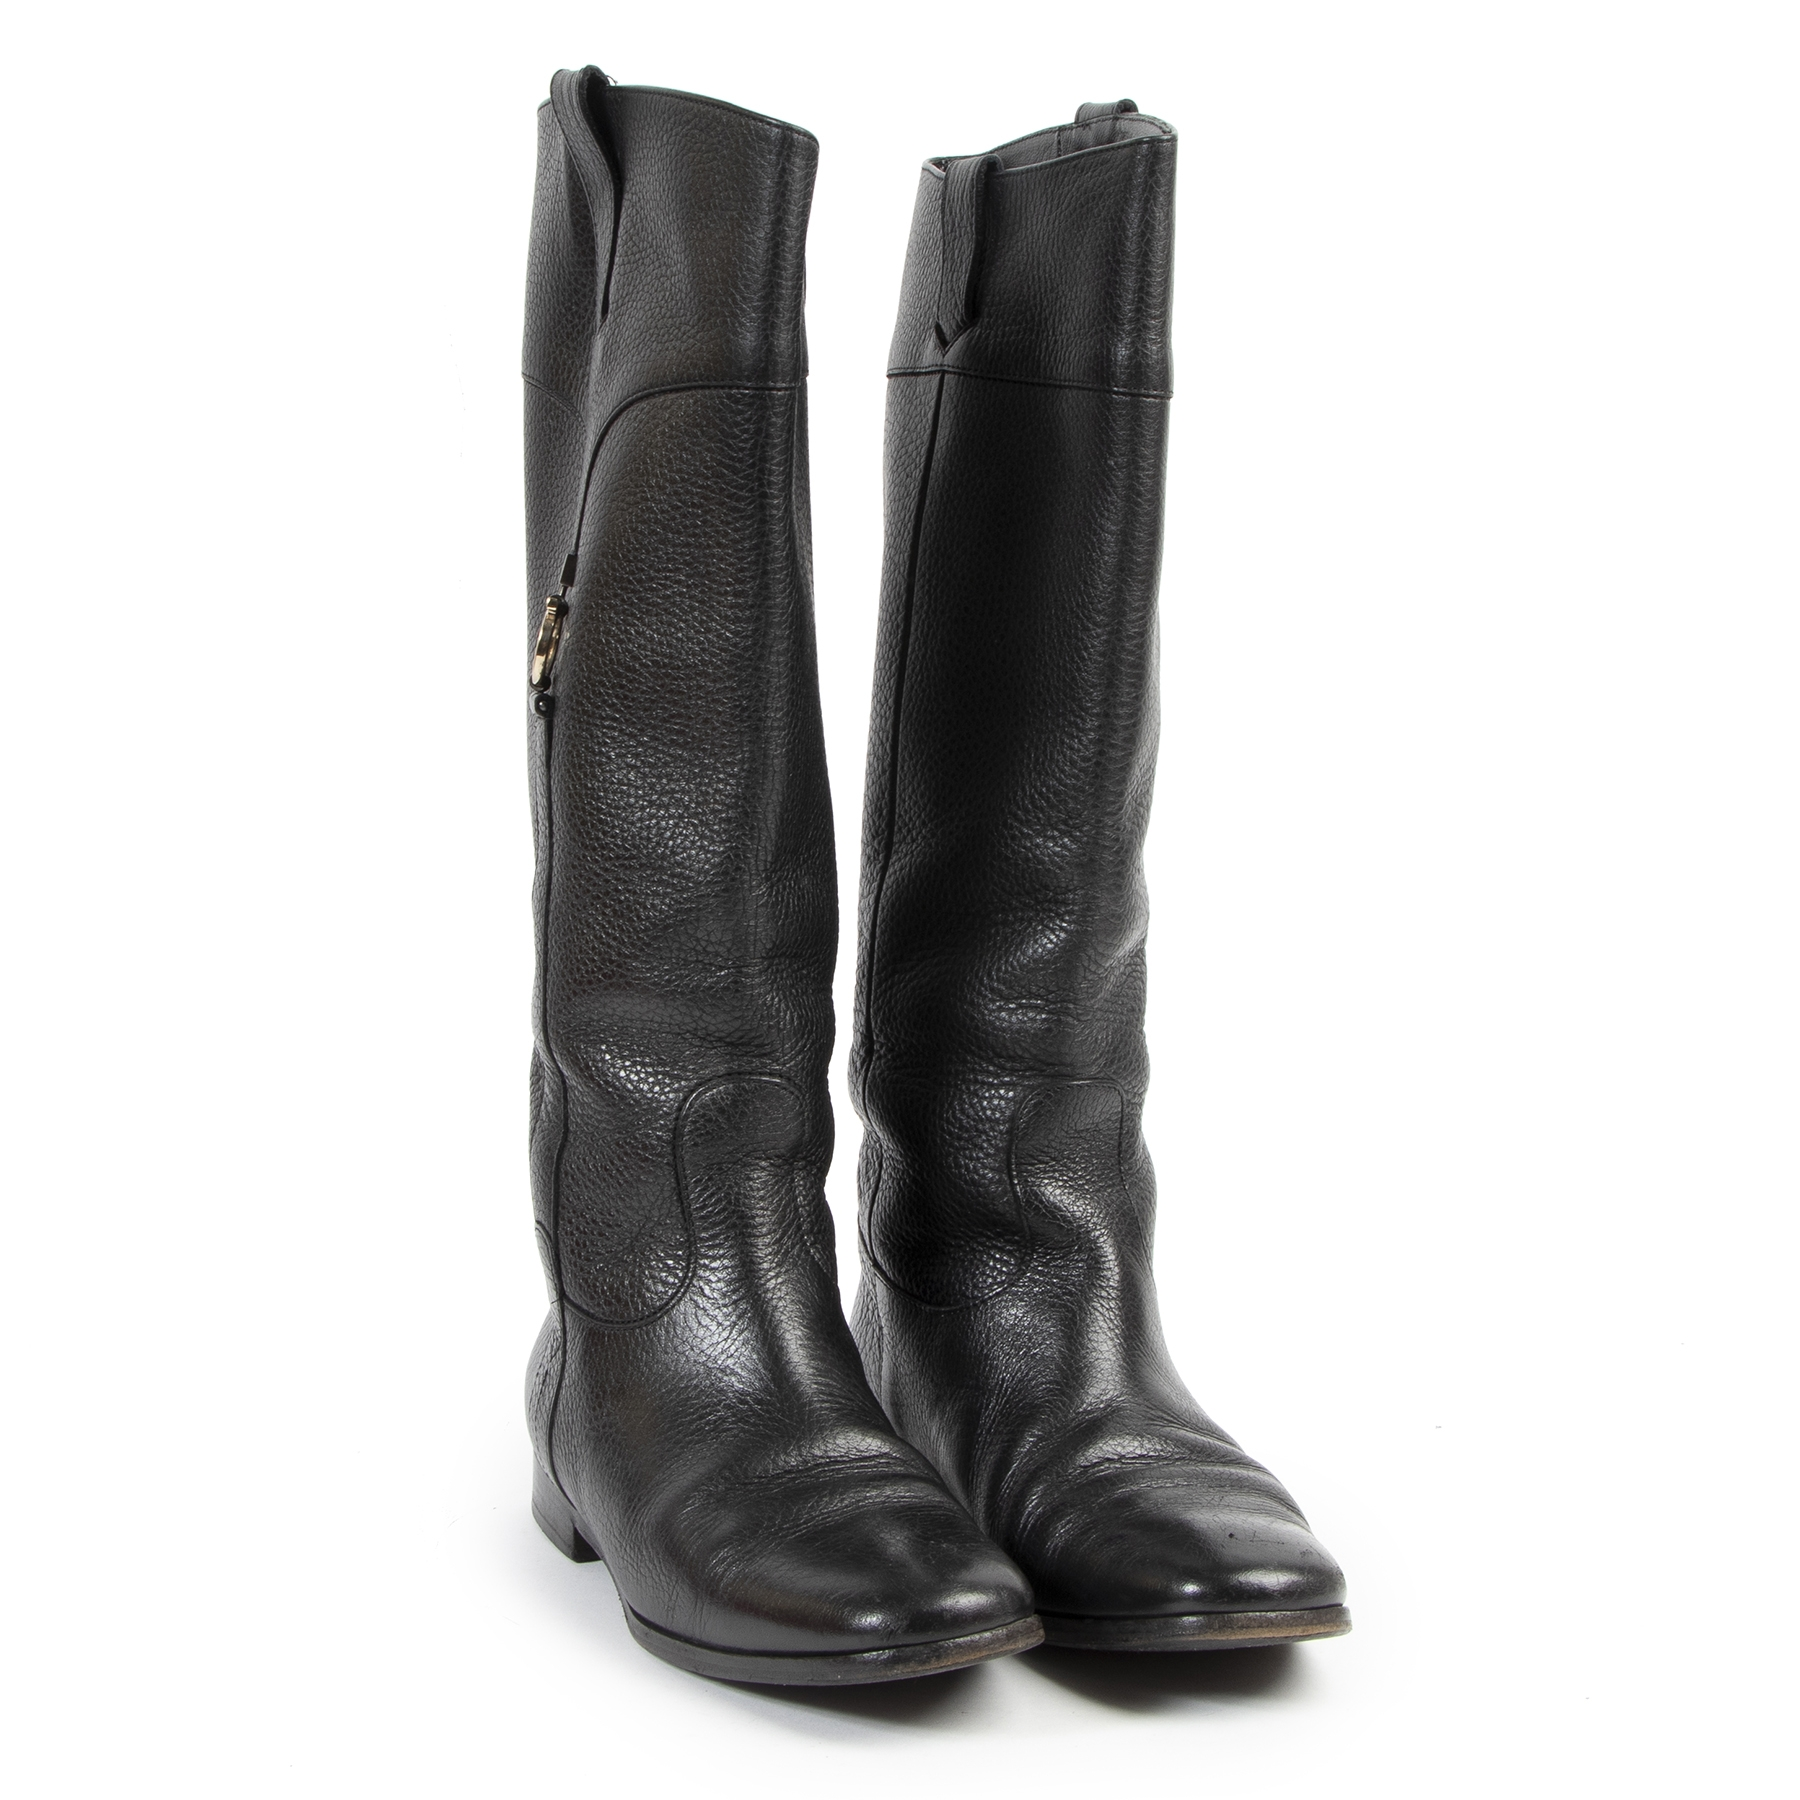 Salvatore Ferragamo Black Boots for the best price at Labellov secondhand luxury